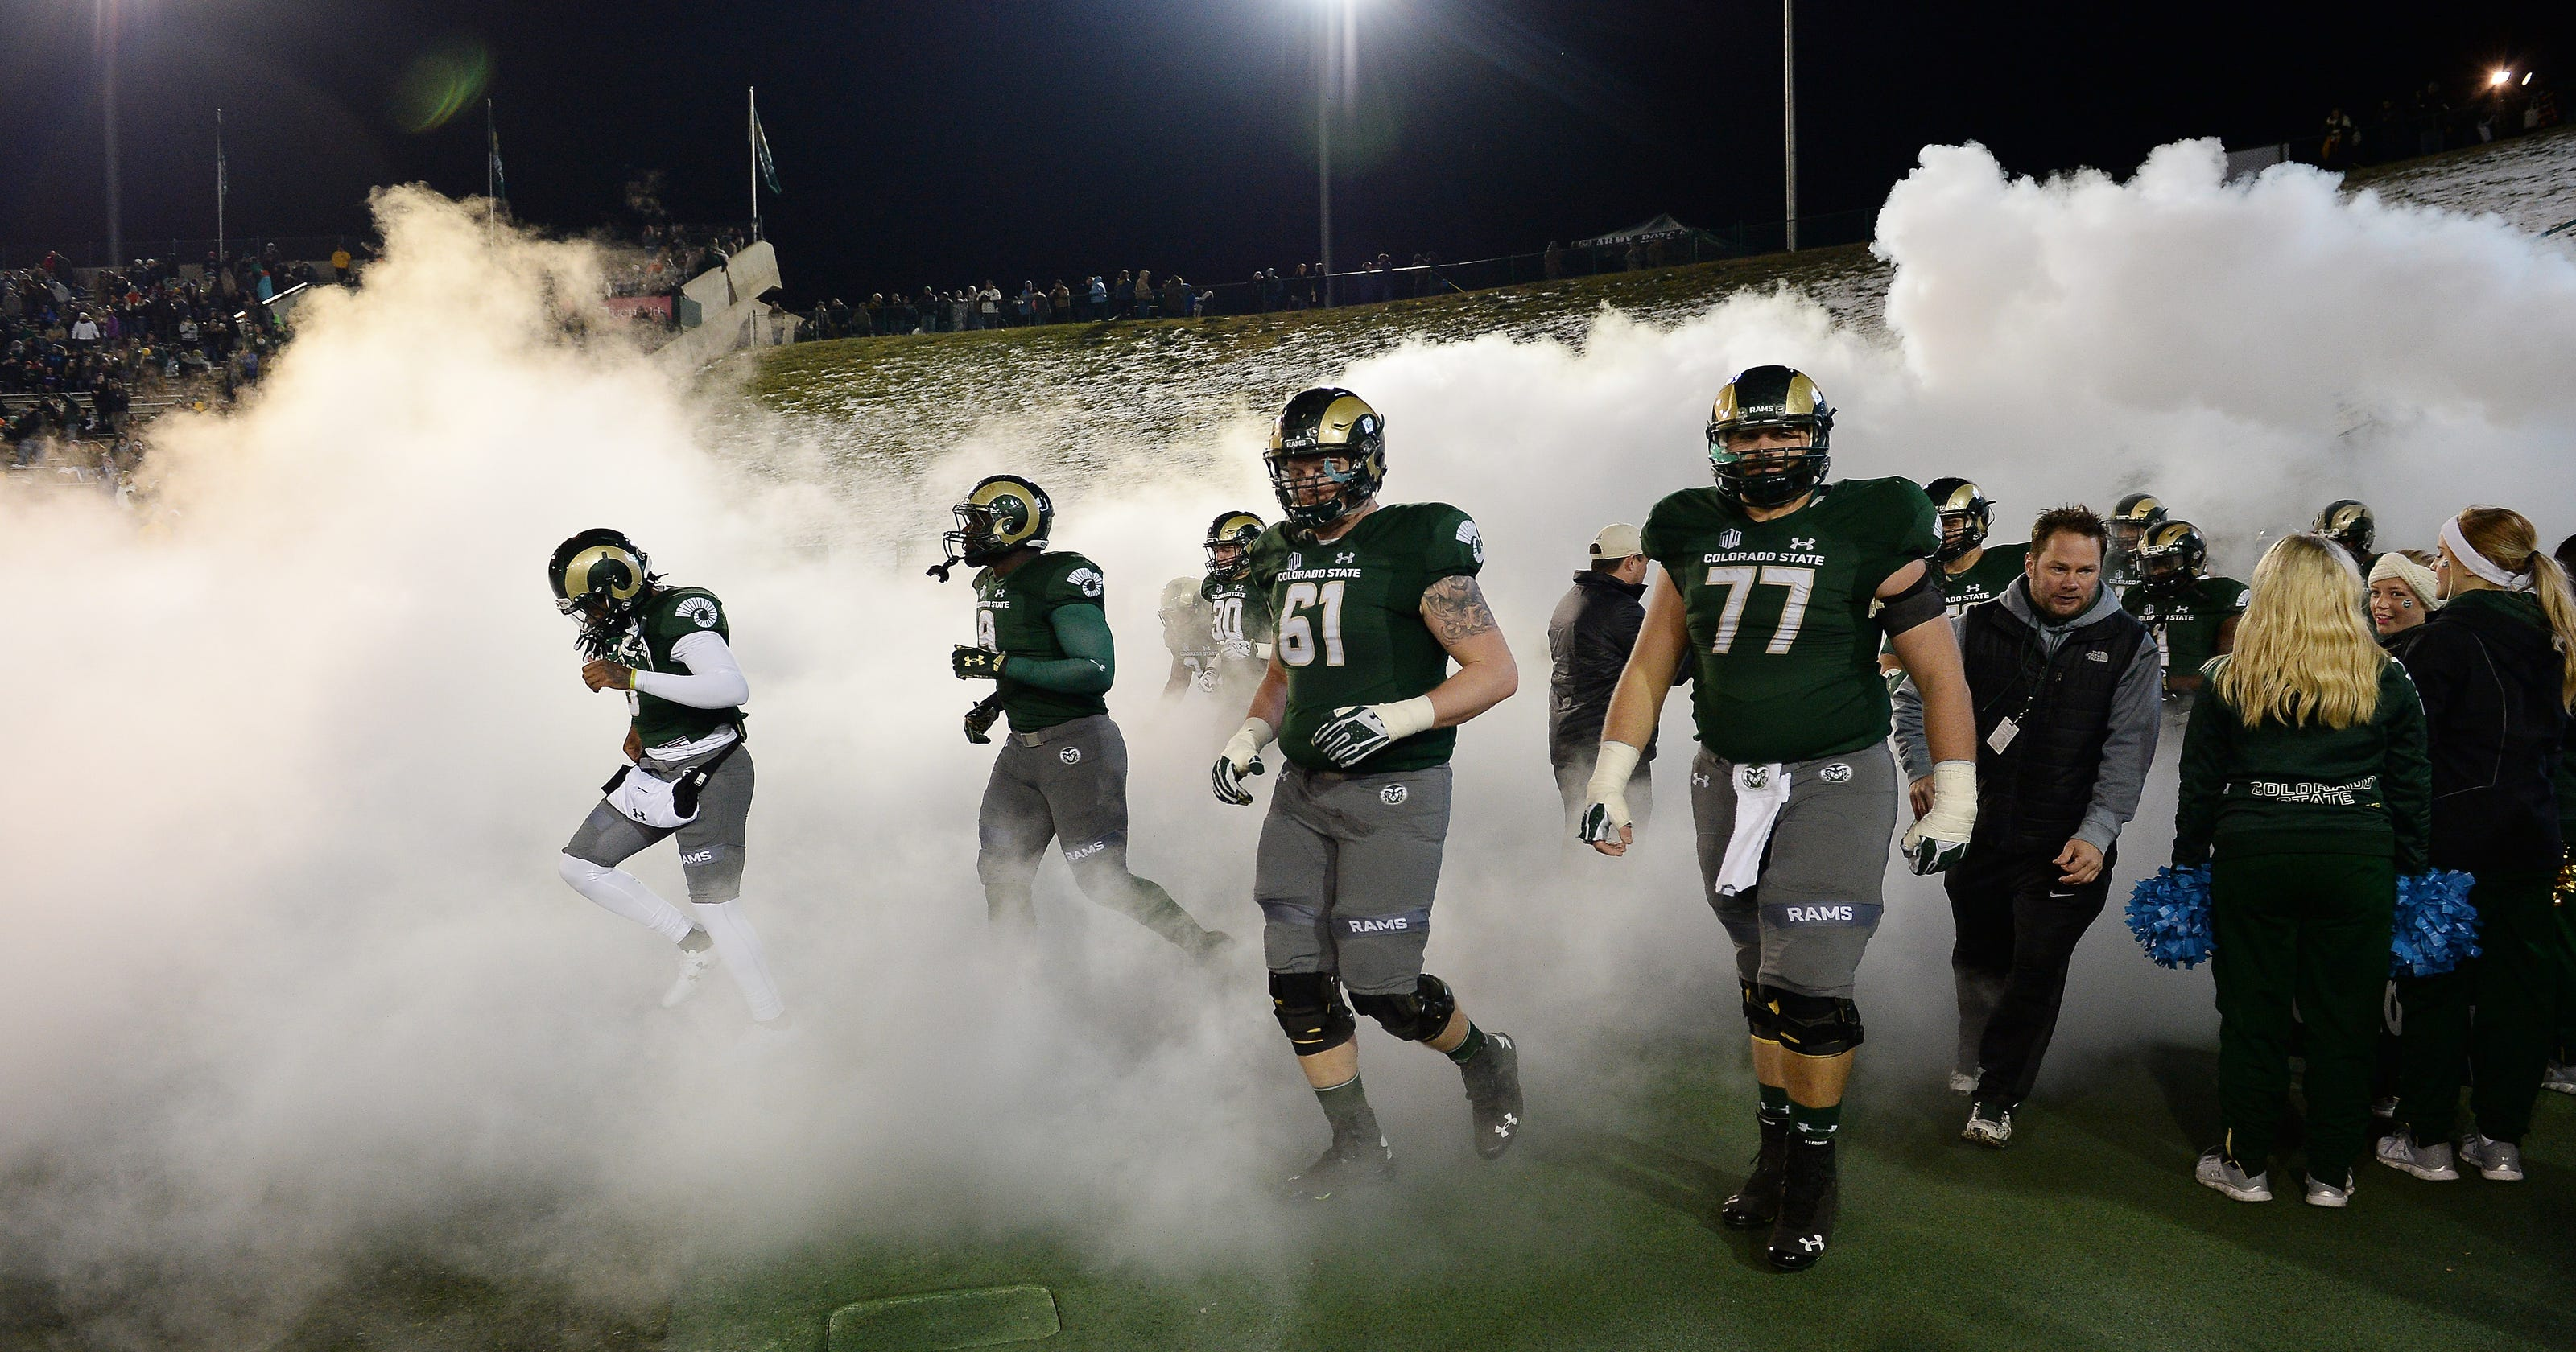 Mountain West considers cutting cord in next TV deal